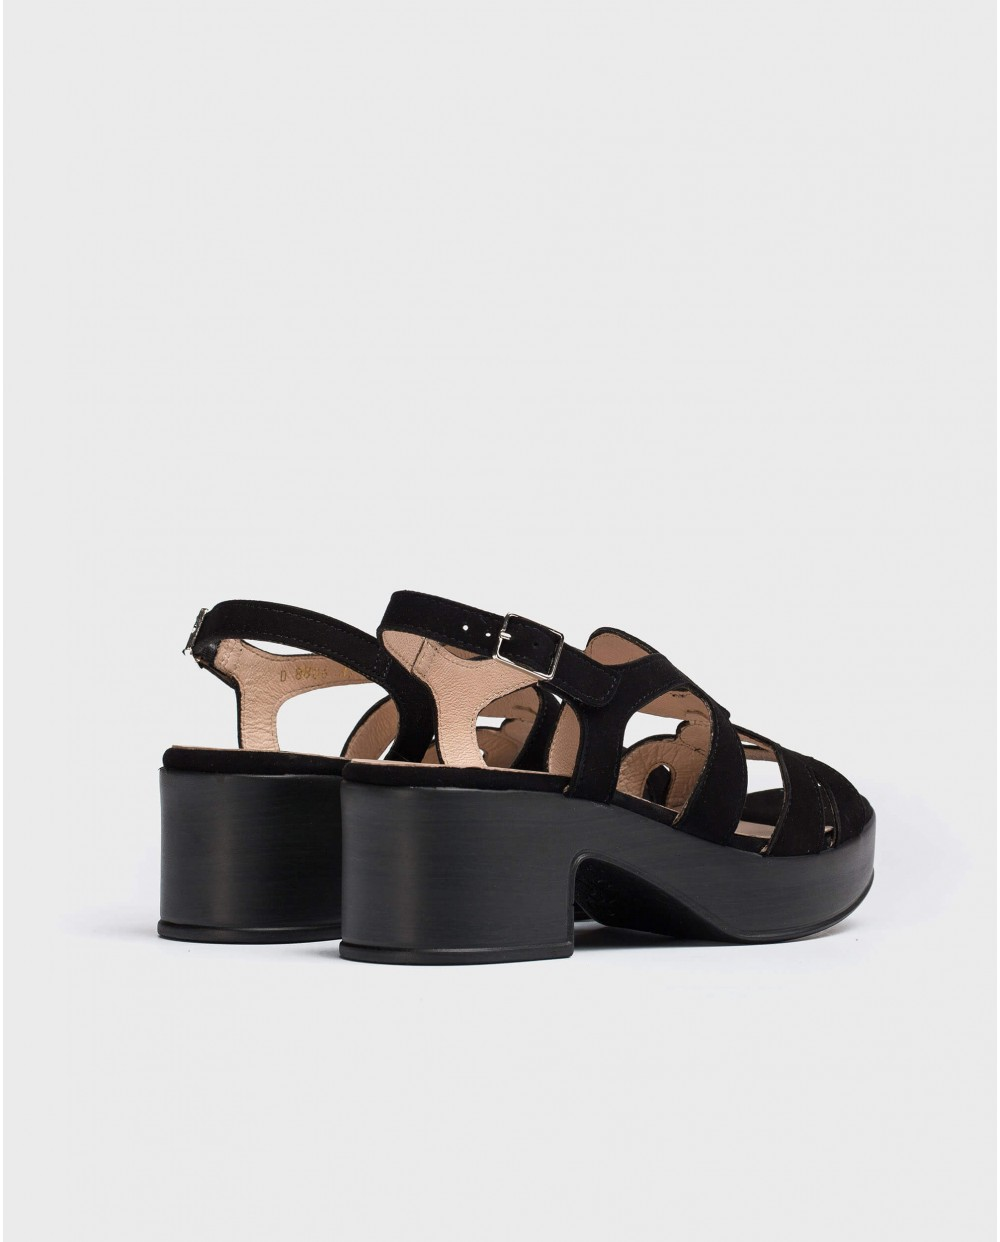 Wonders-Wedges-Cicular-cut sandal